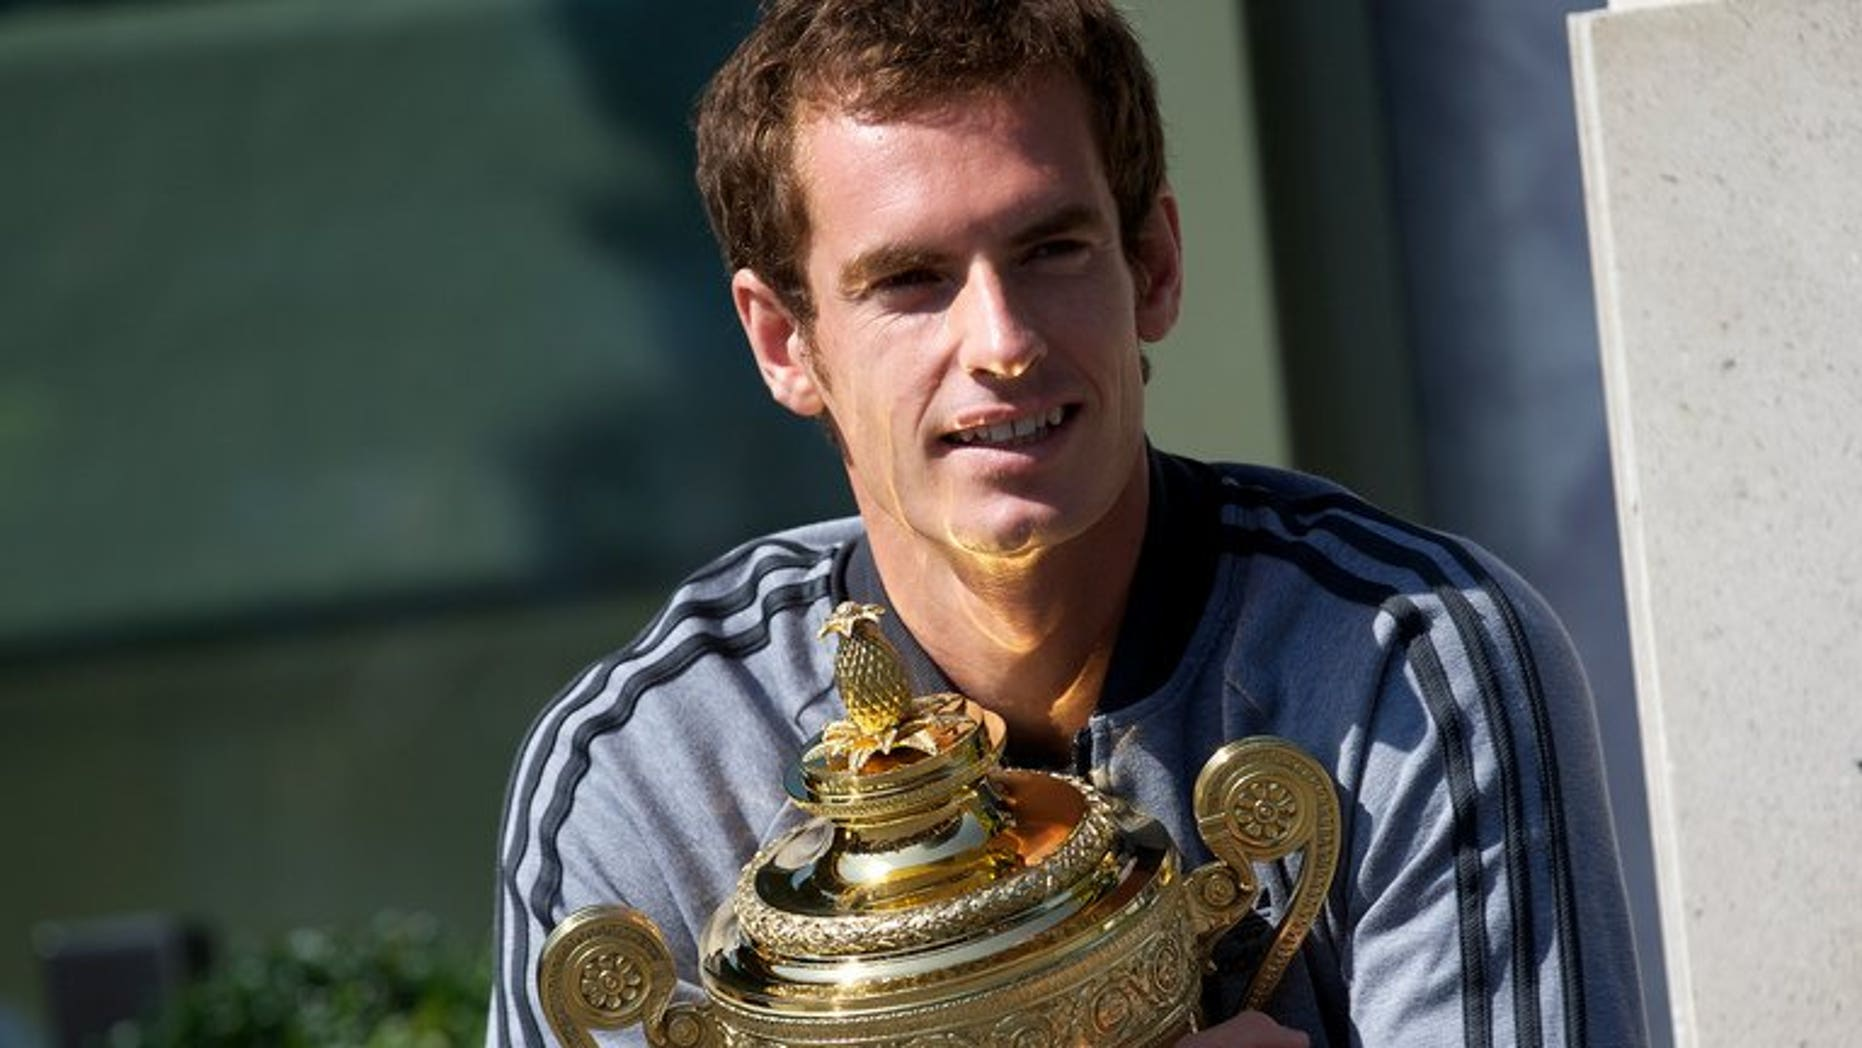 British tennis player Andy Murray poses with the 2013 Wimbledon trophy at the All England Club in Wimbledon, southwest London, on July 8, 2013. Murray admits that try as he might, he cannot keep the excitement and anticipation of his upcoming US Open title defence out of his mind at the Montreal Masters.